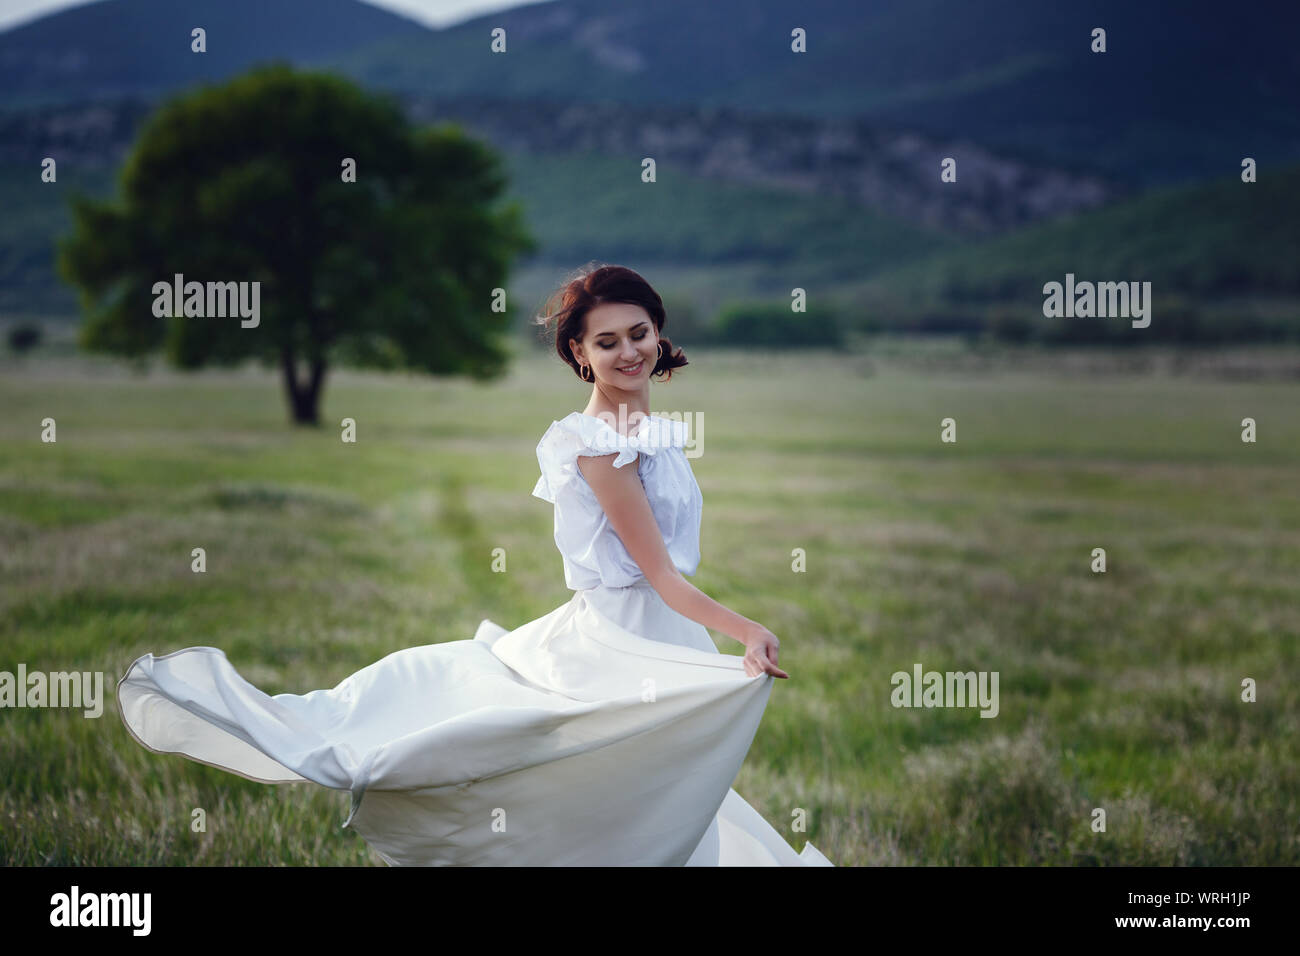 Woman Happy, Beautiful Active Free Girl on Summer Green Outdoor Background. Stock Photo